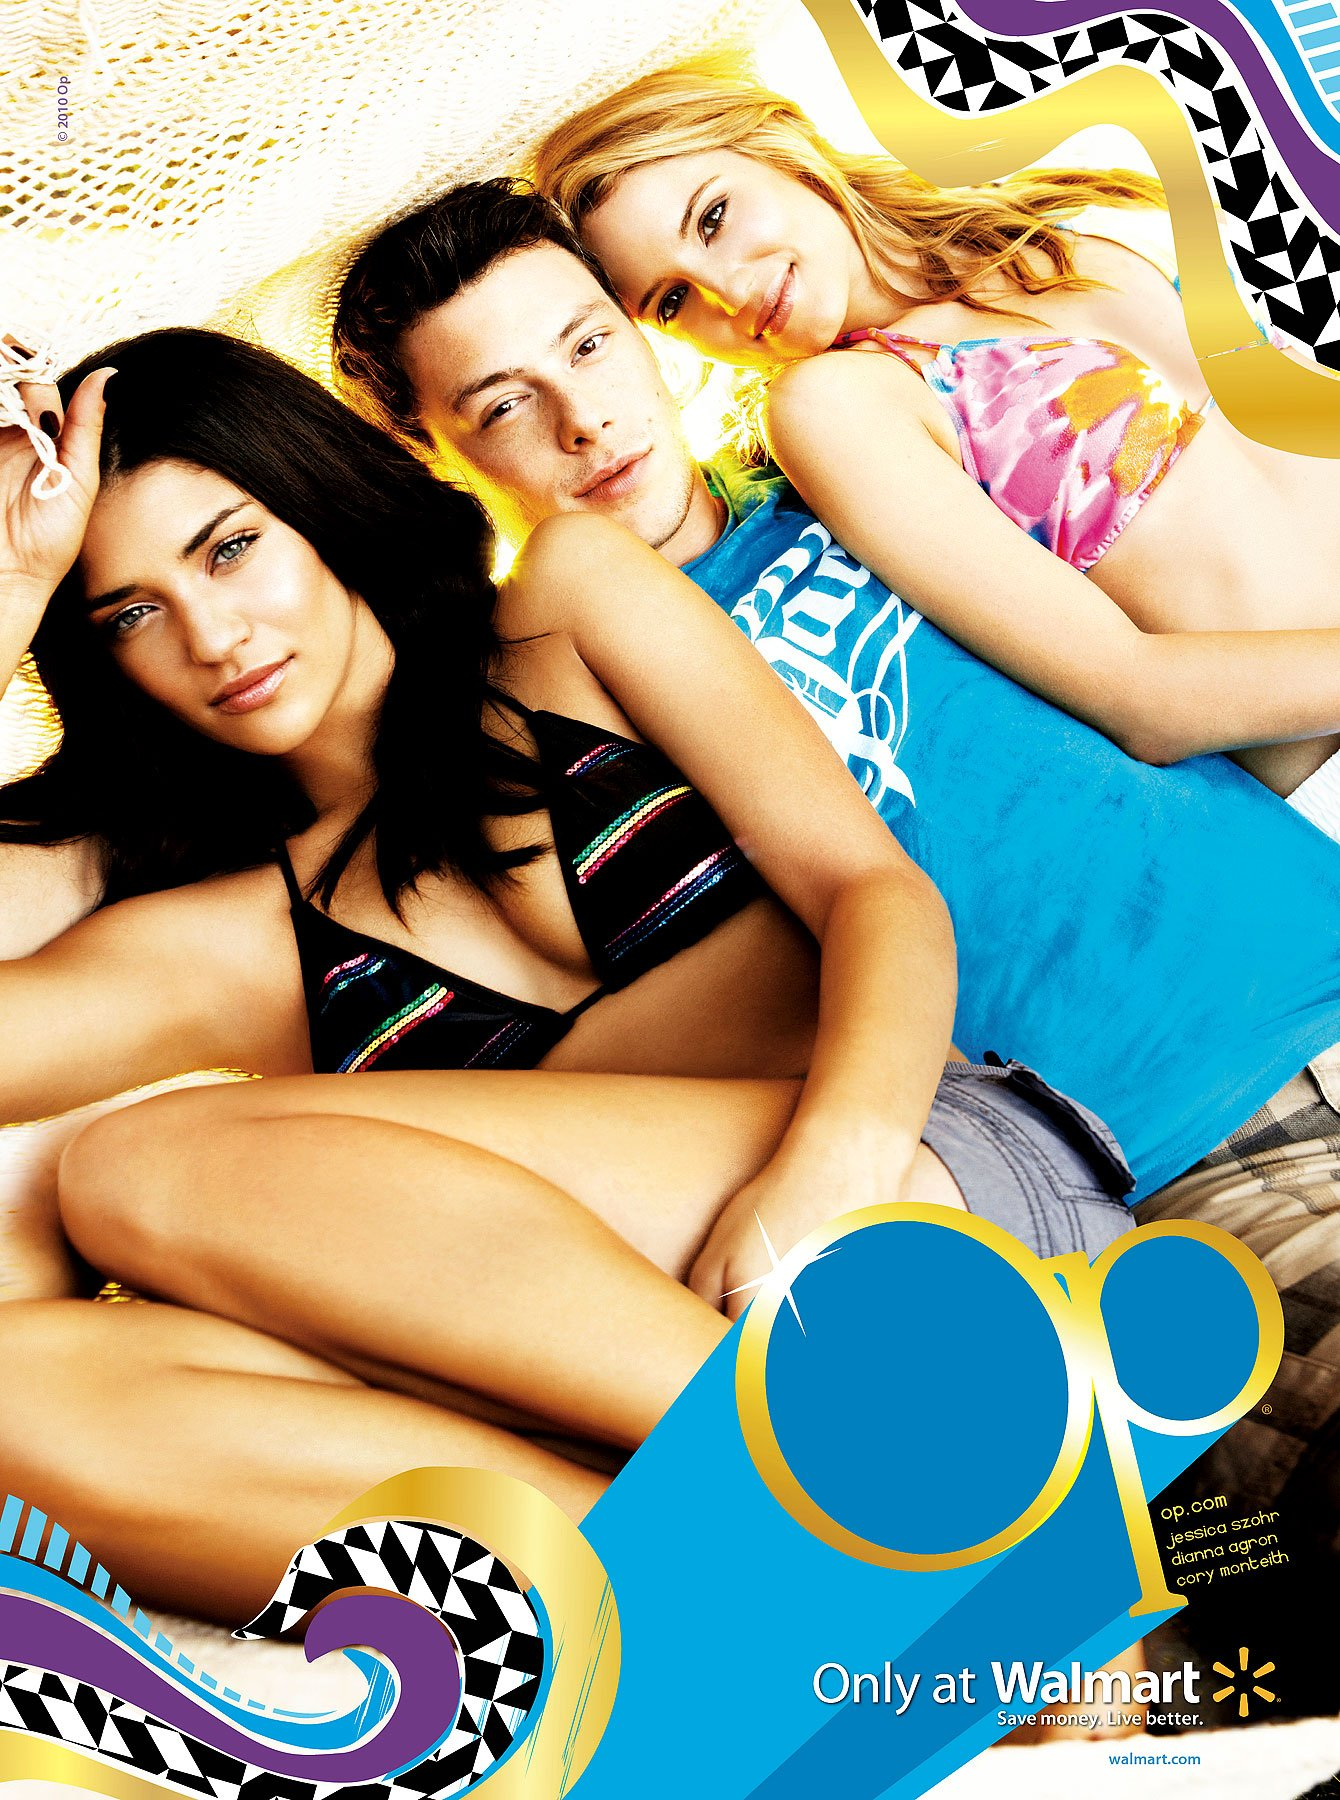 'Gossip Girl' Jessica Szhor Bikinis With 'Glee' Cast For Op (PHOTOS)